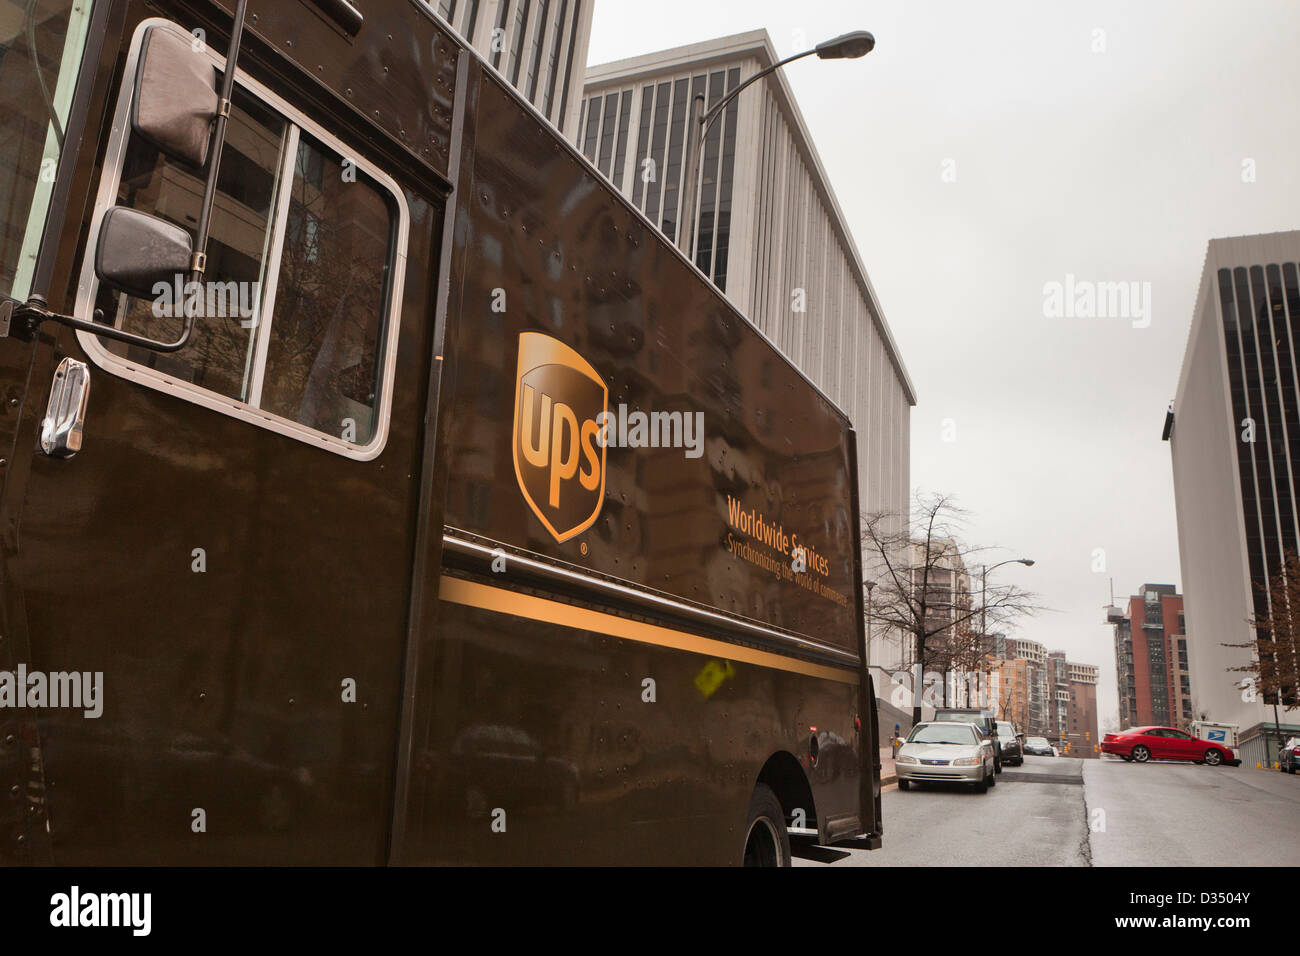 UPS delivery truck - Stock Image